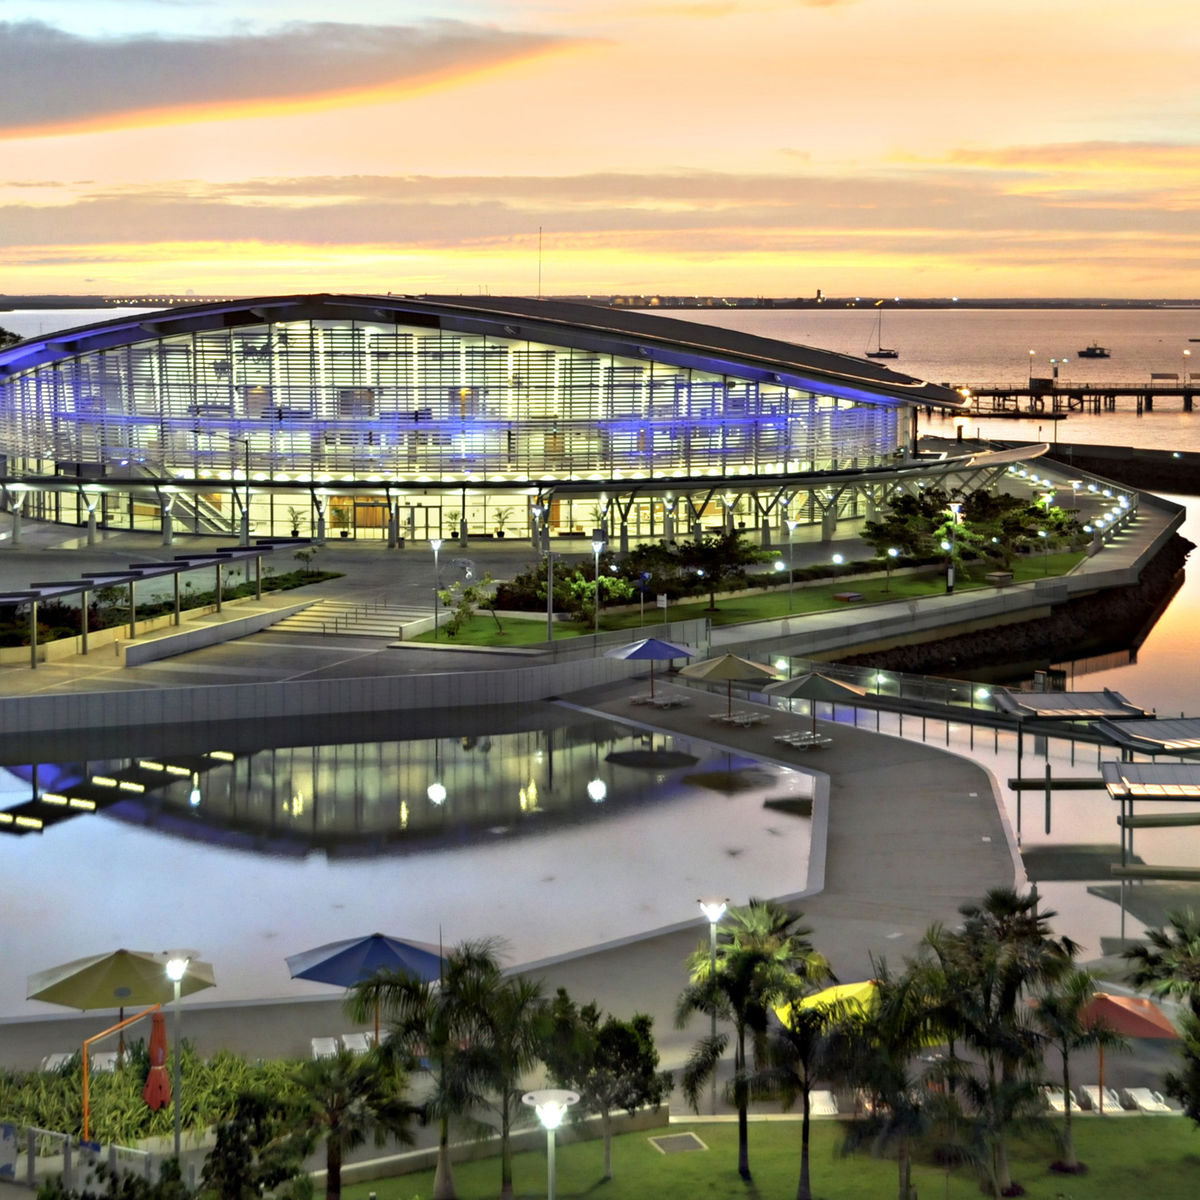 Exterior image of Darwin Convention Centre